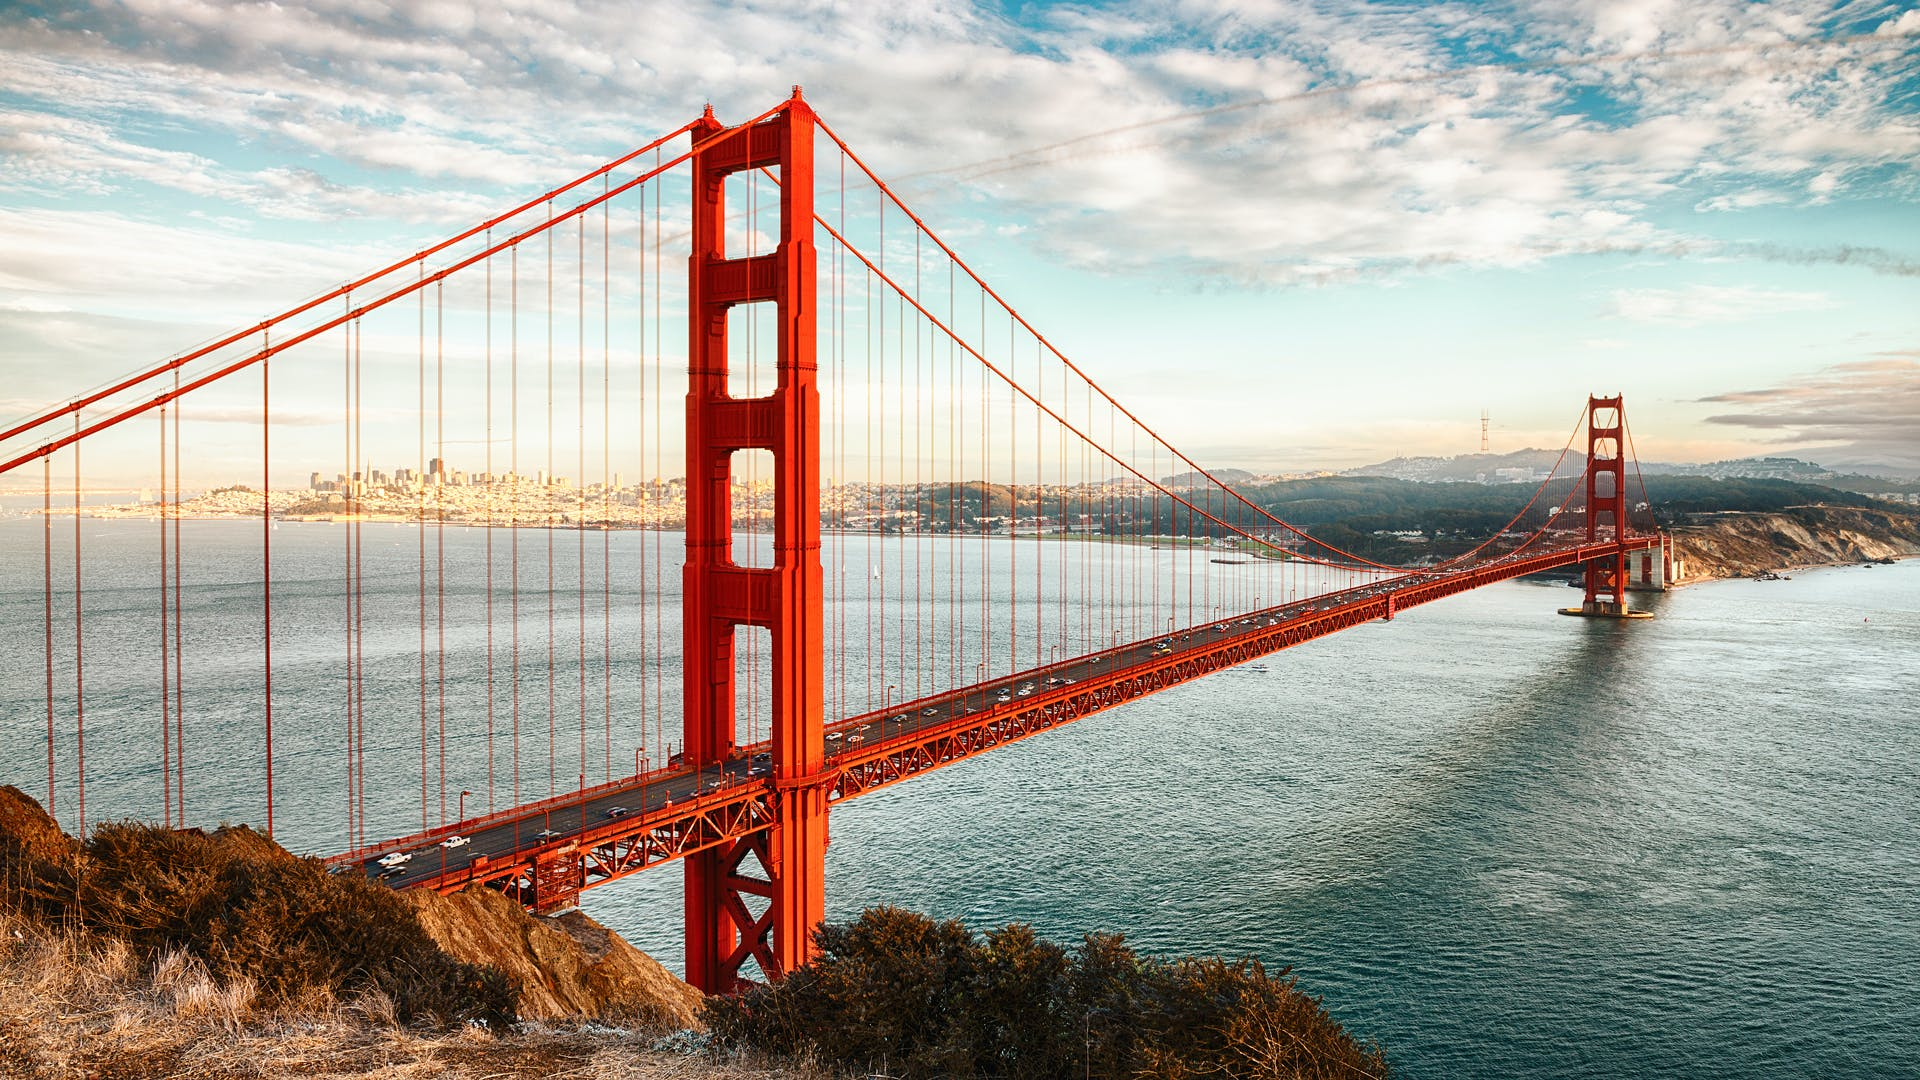 https _www.history.com_.image_MTY1MTc3MjE0MzExMDgxNTQ1_topic-golden-gate-bridge-gettyimages-177770941